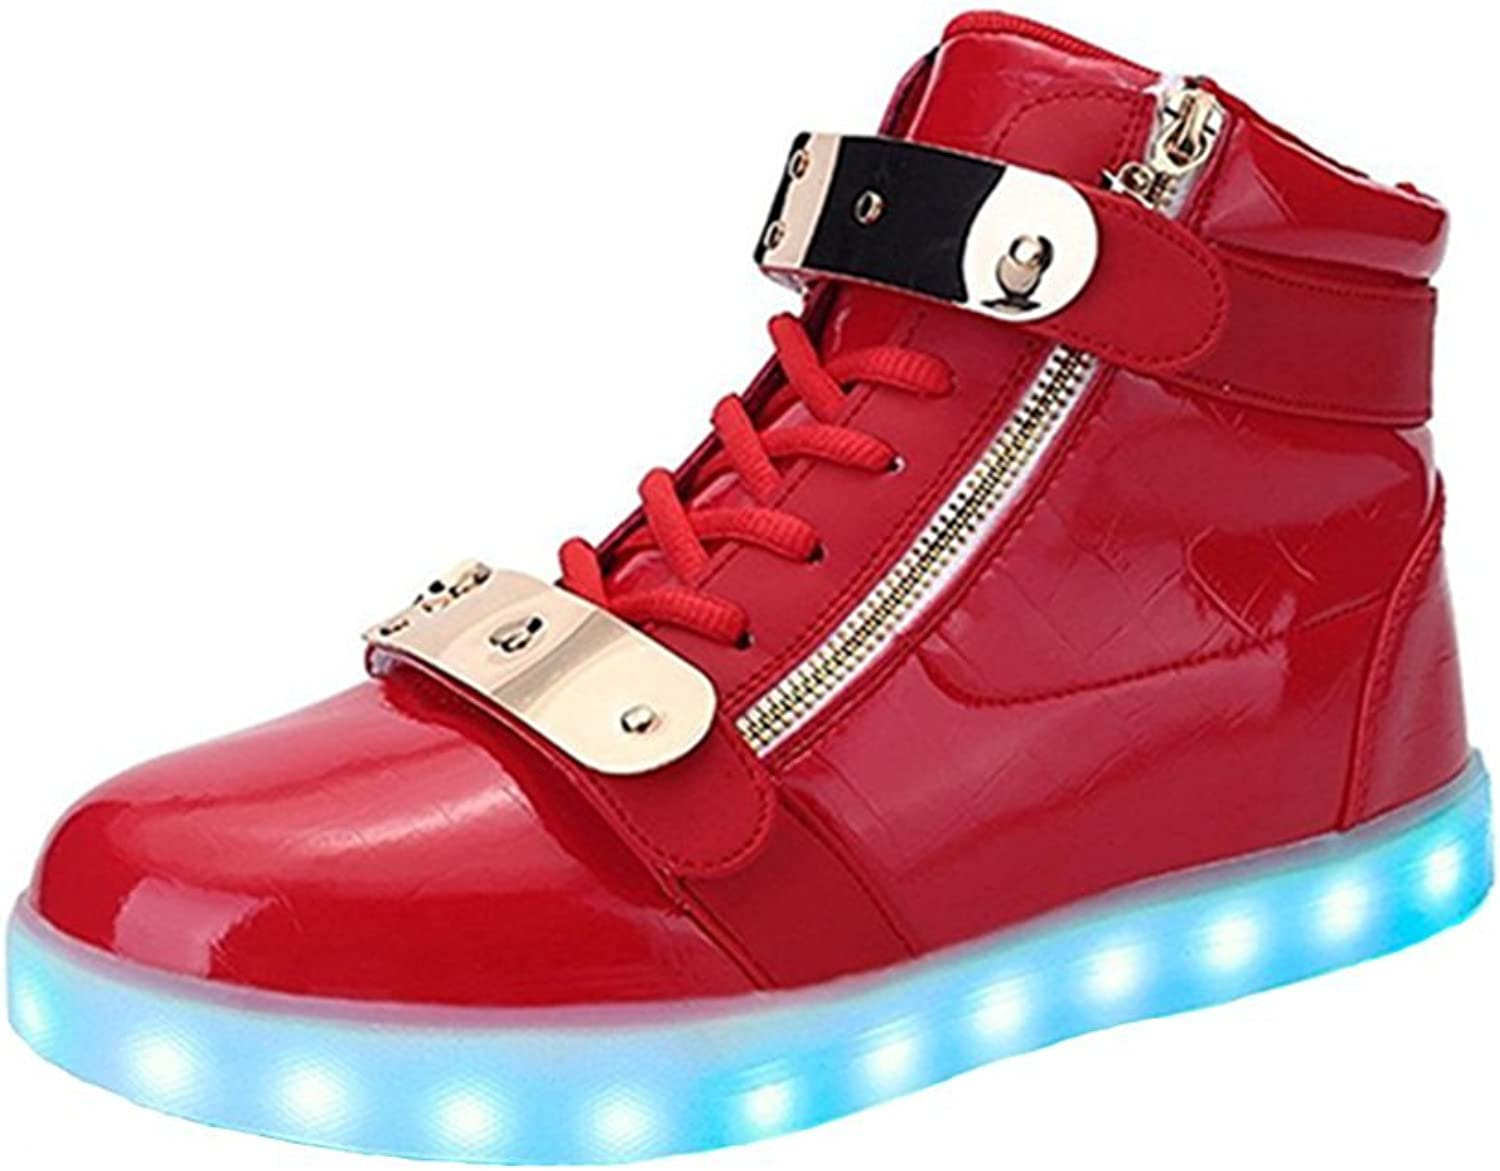 THEZX LED Light Up shoes 7 colors in 11 Modes High Top Flashing Sneakers for Mens & Womens